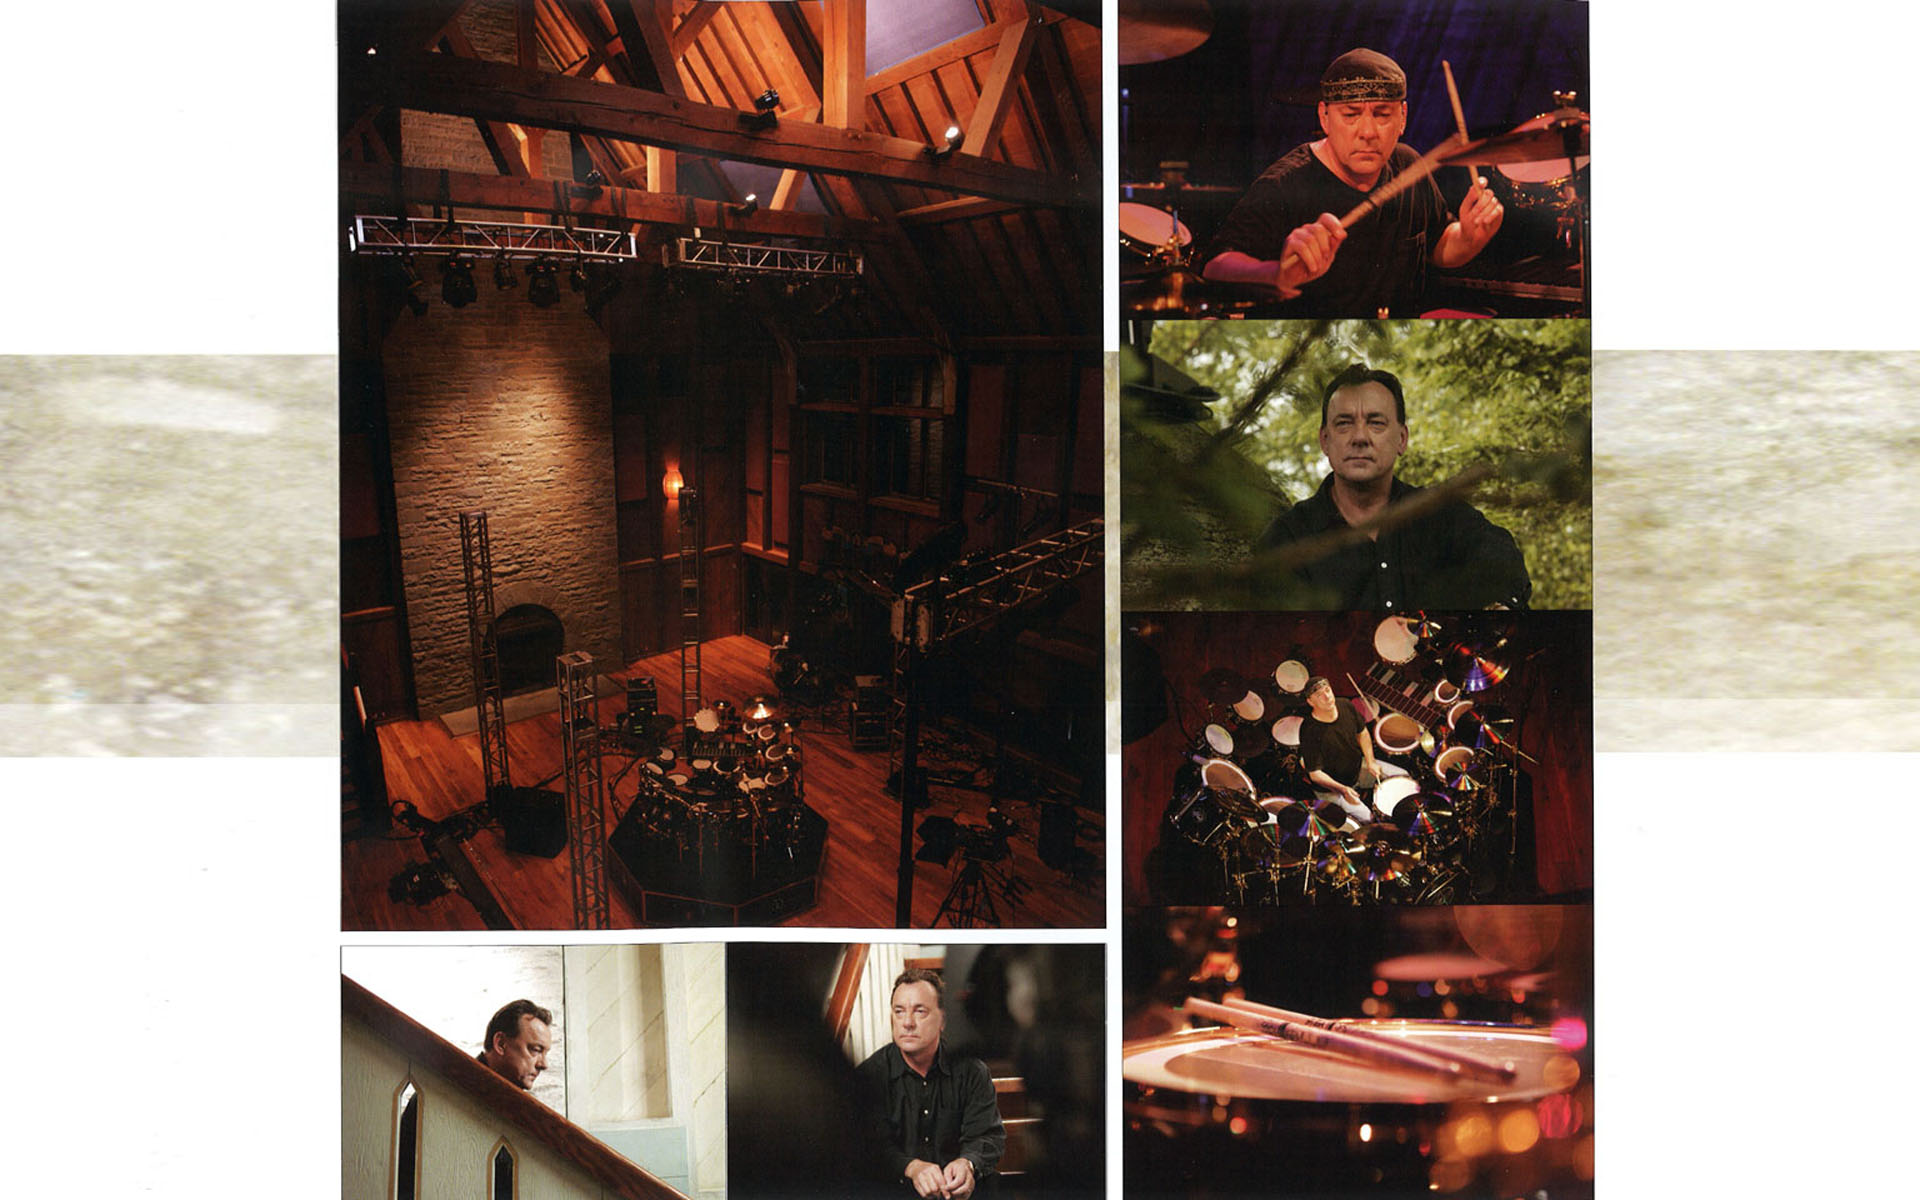 Neil peart anatomy of a drum solo